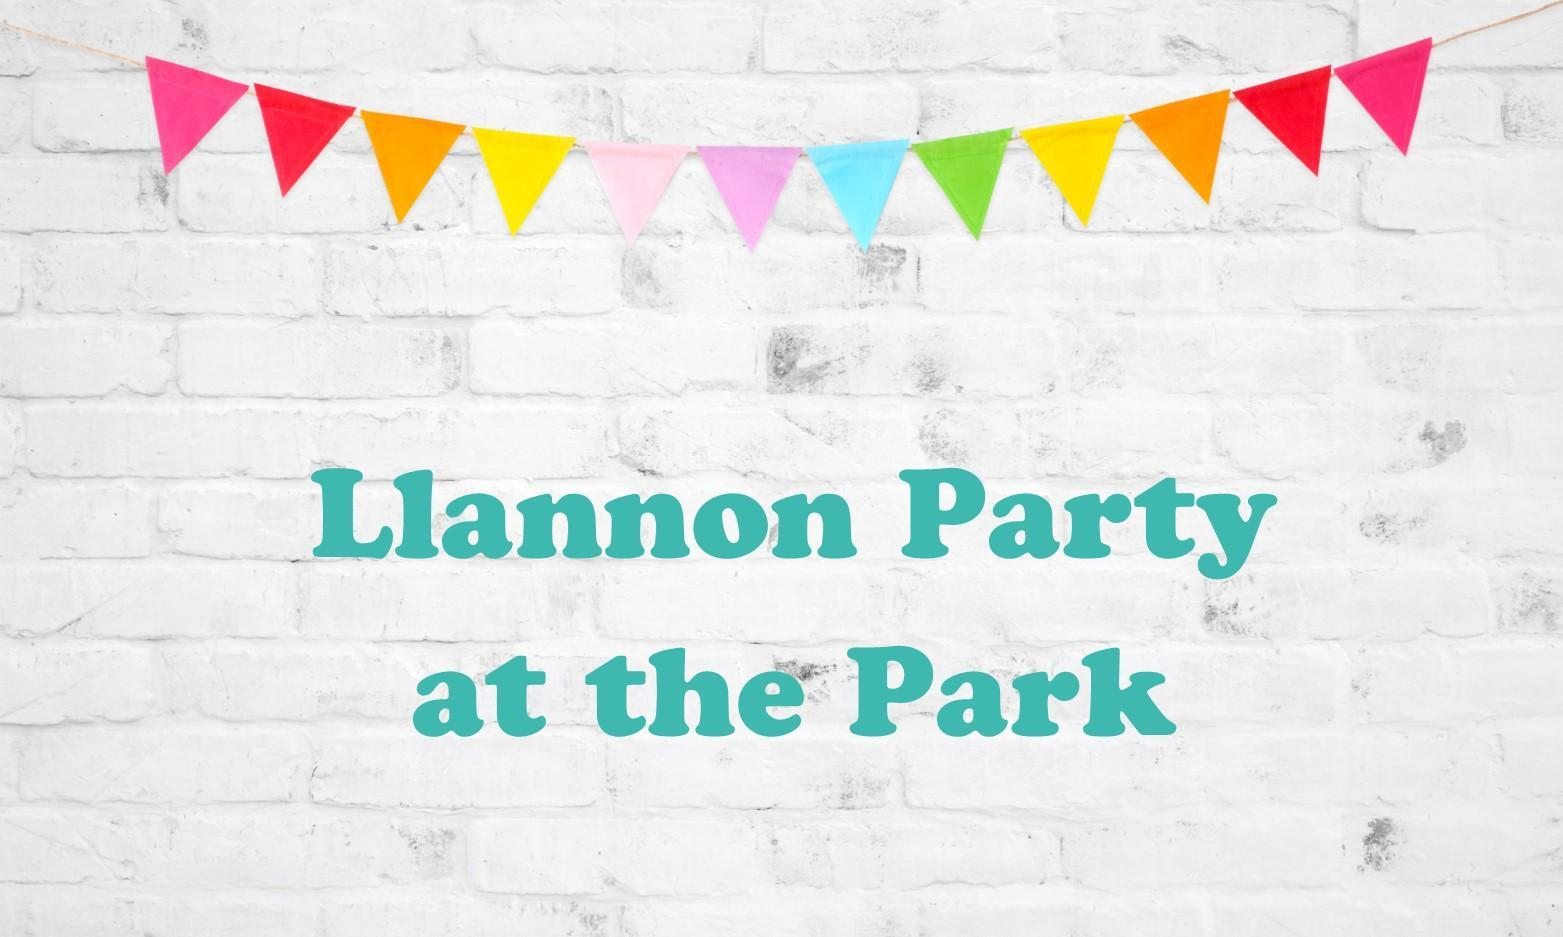 Llannon Party at the Park